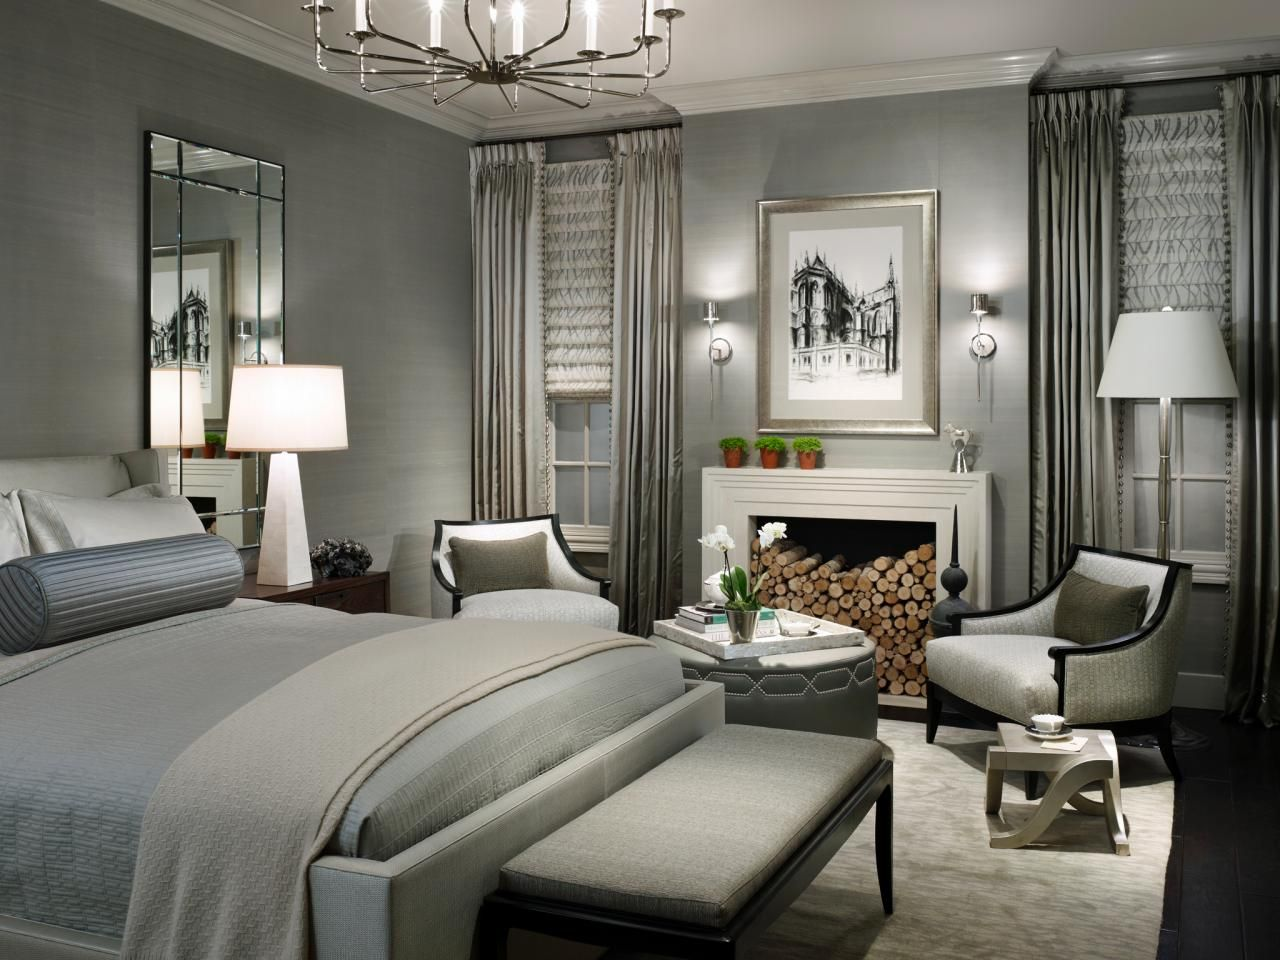 beautiful bedrooms 15 shades of gray. Interior Design Ideas. Home Design Ideas